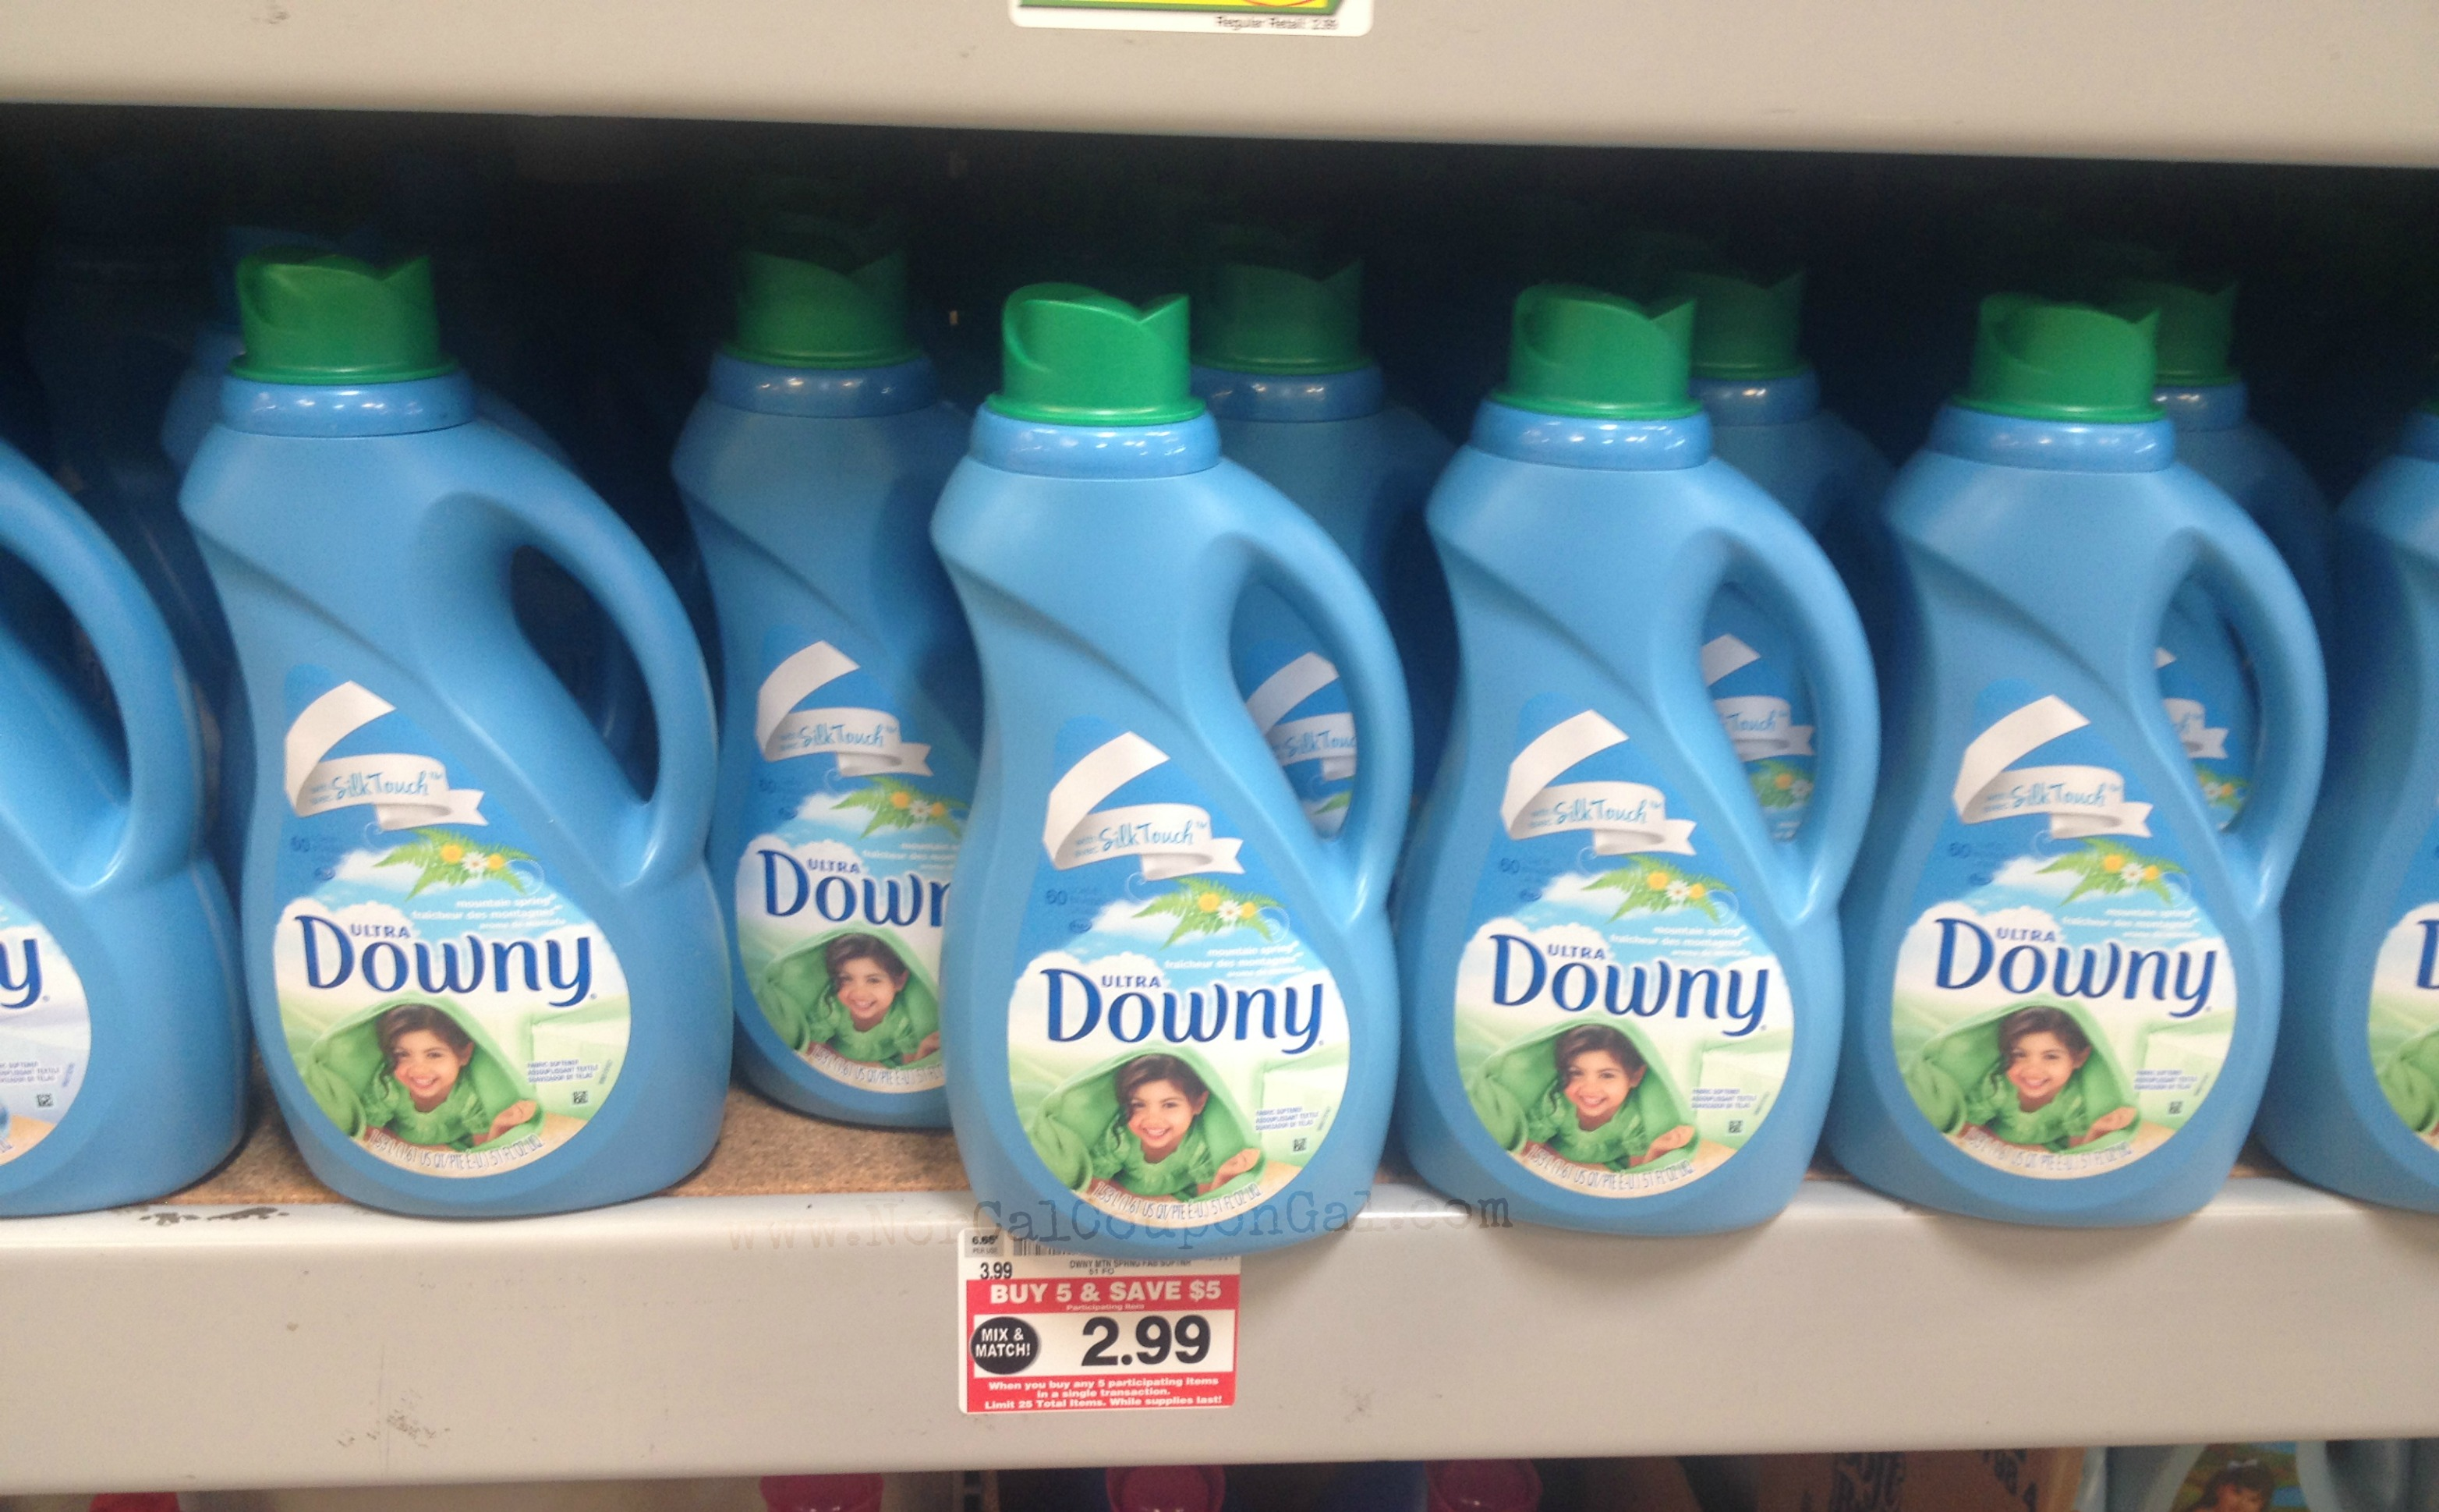 Just a reminder this week foods co has downy fabric softener on sale